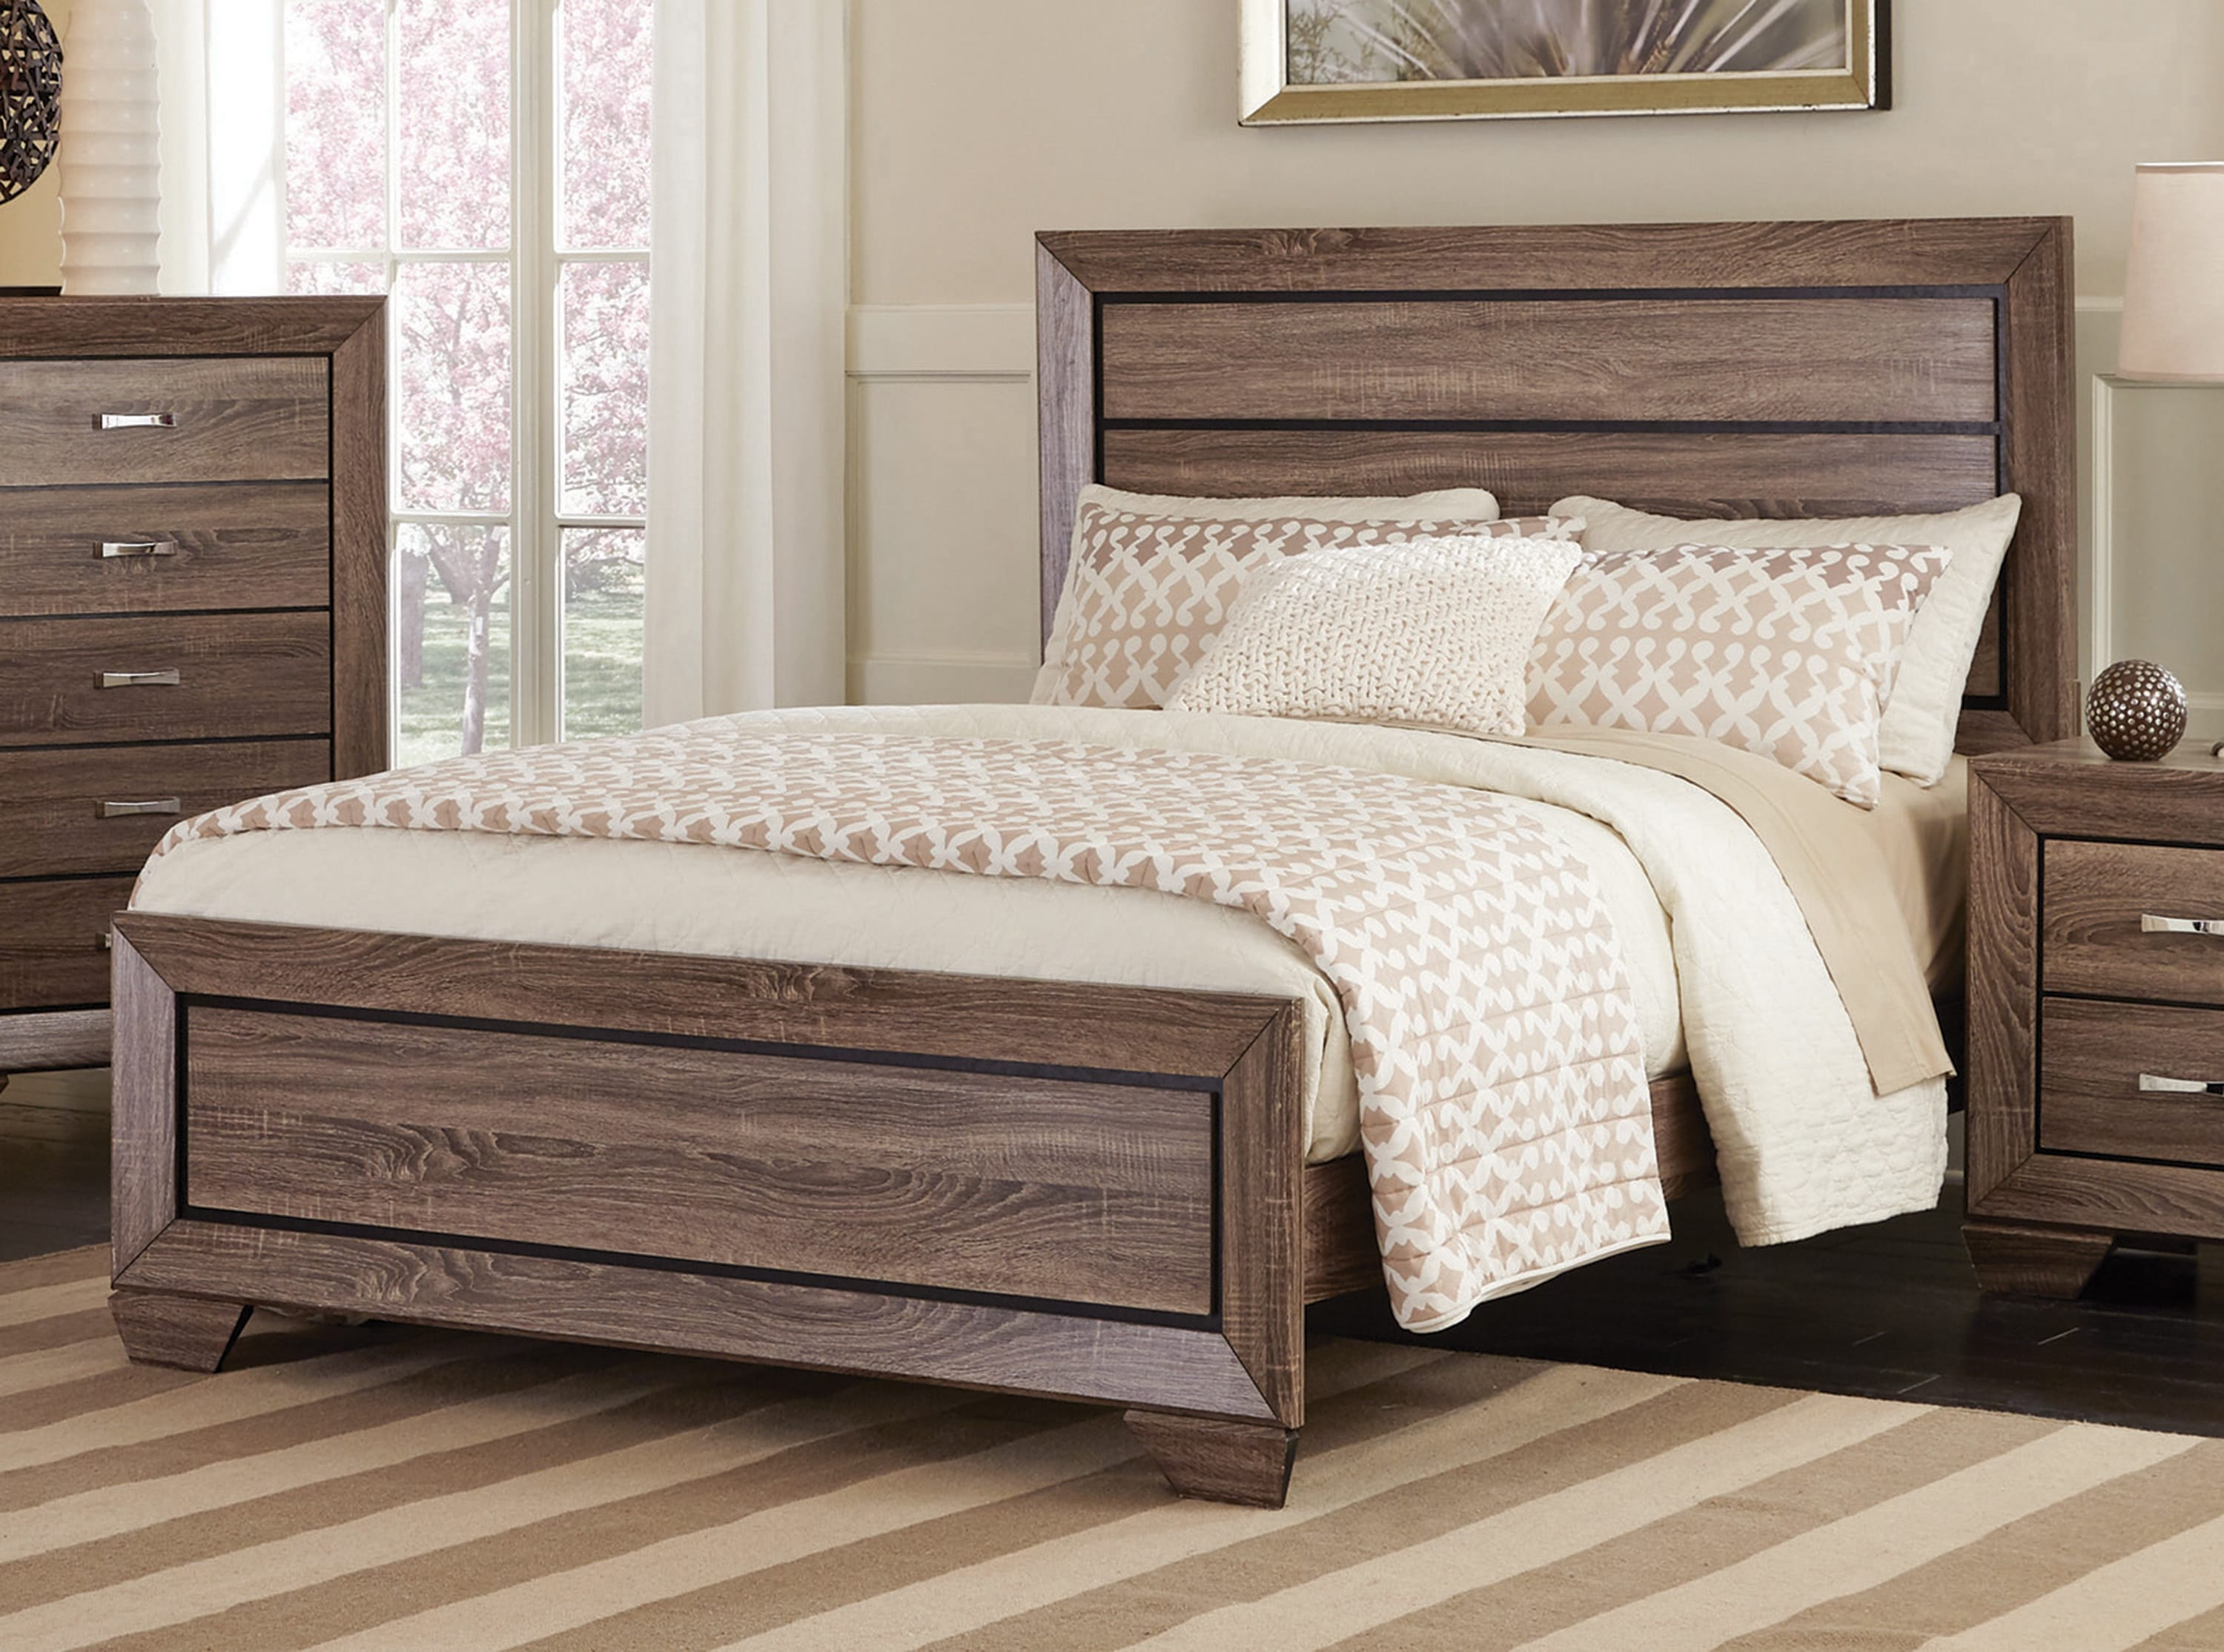 Kauffman Washed Taupe Bedroom Set By Coaster Fine Furniture